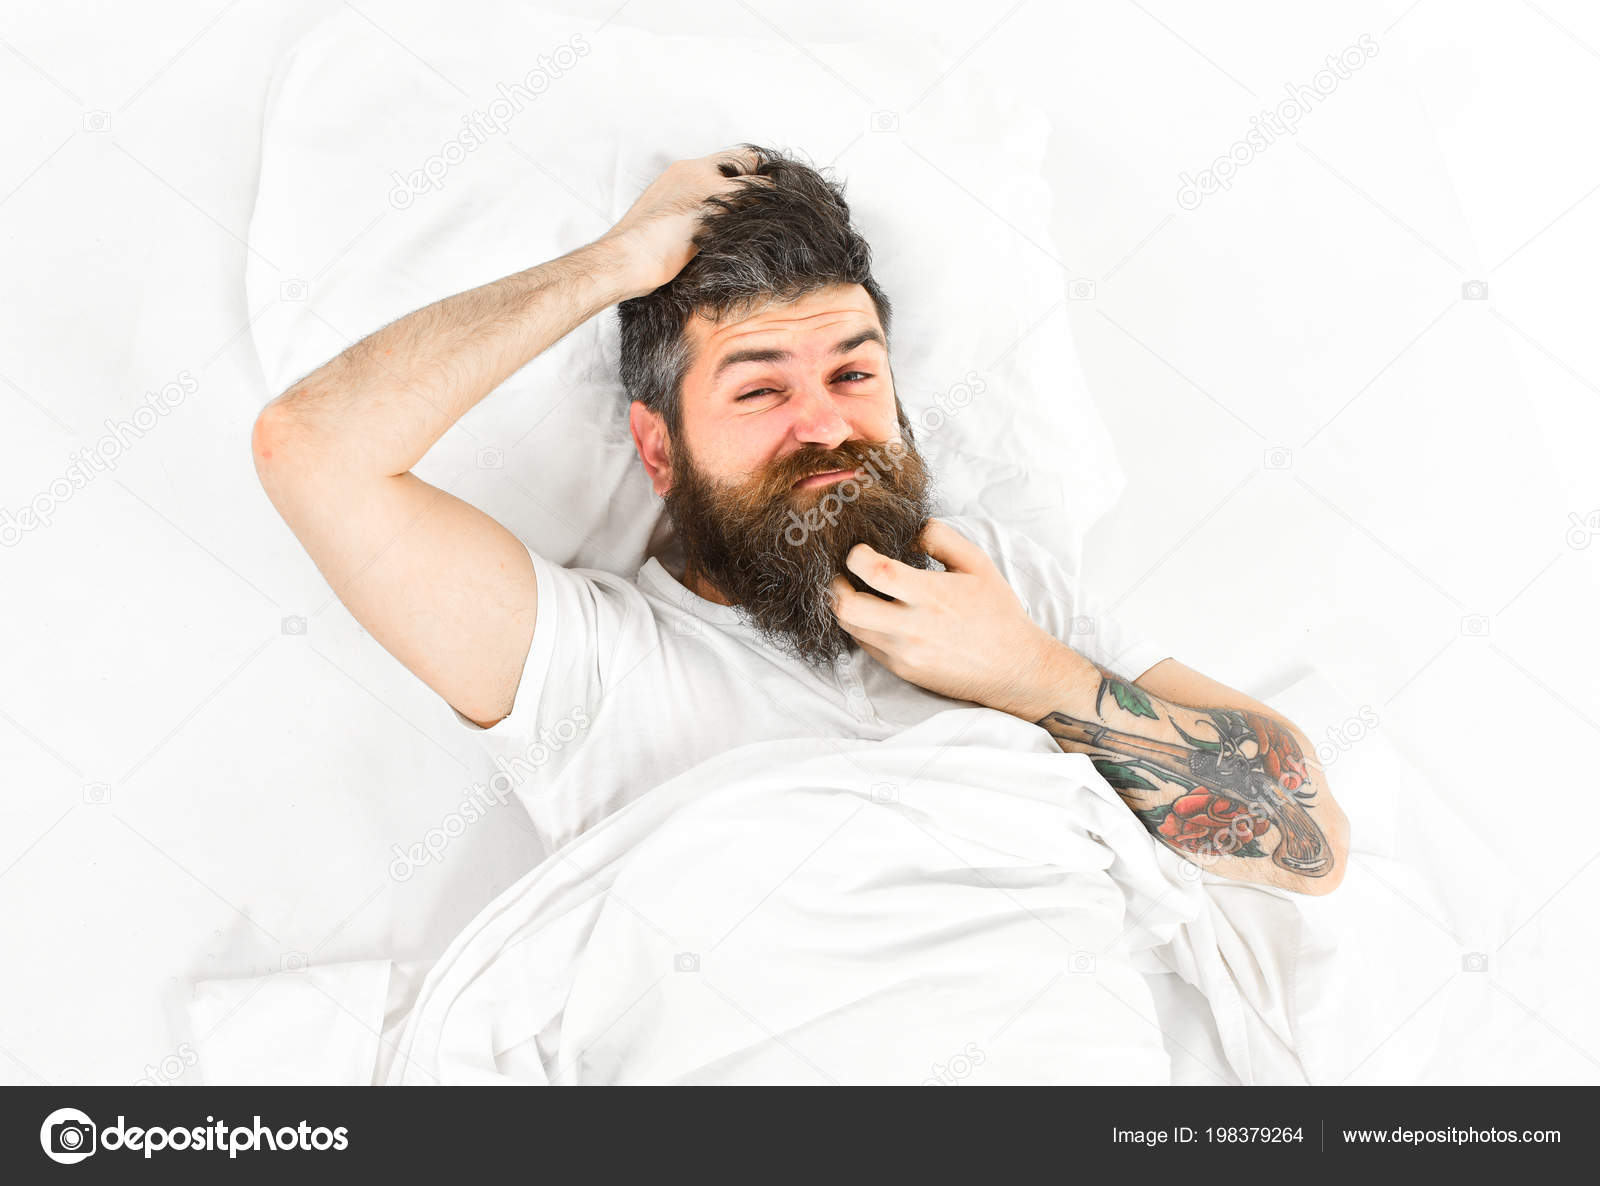 Man with itchy face wake up, lay on bed, scratching — Stock